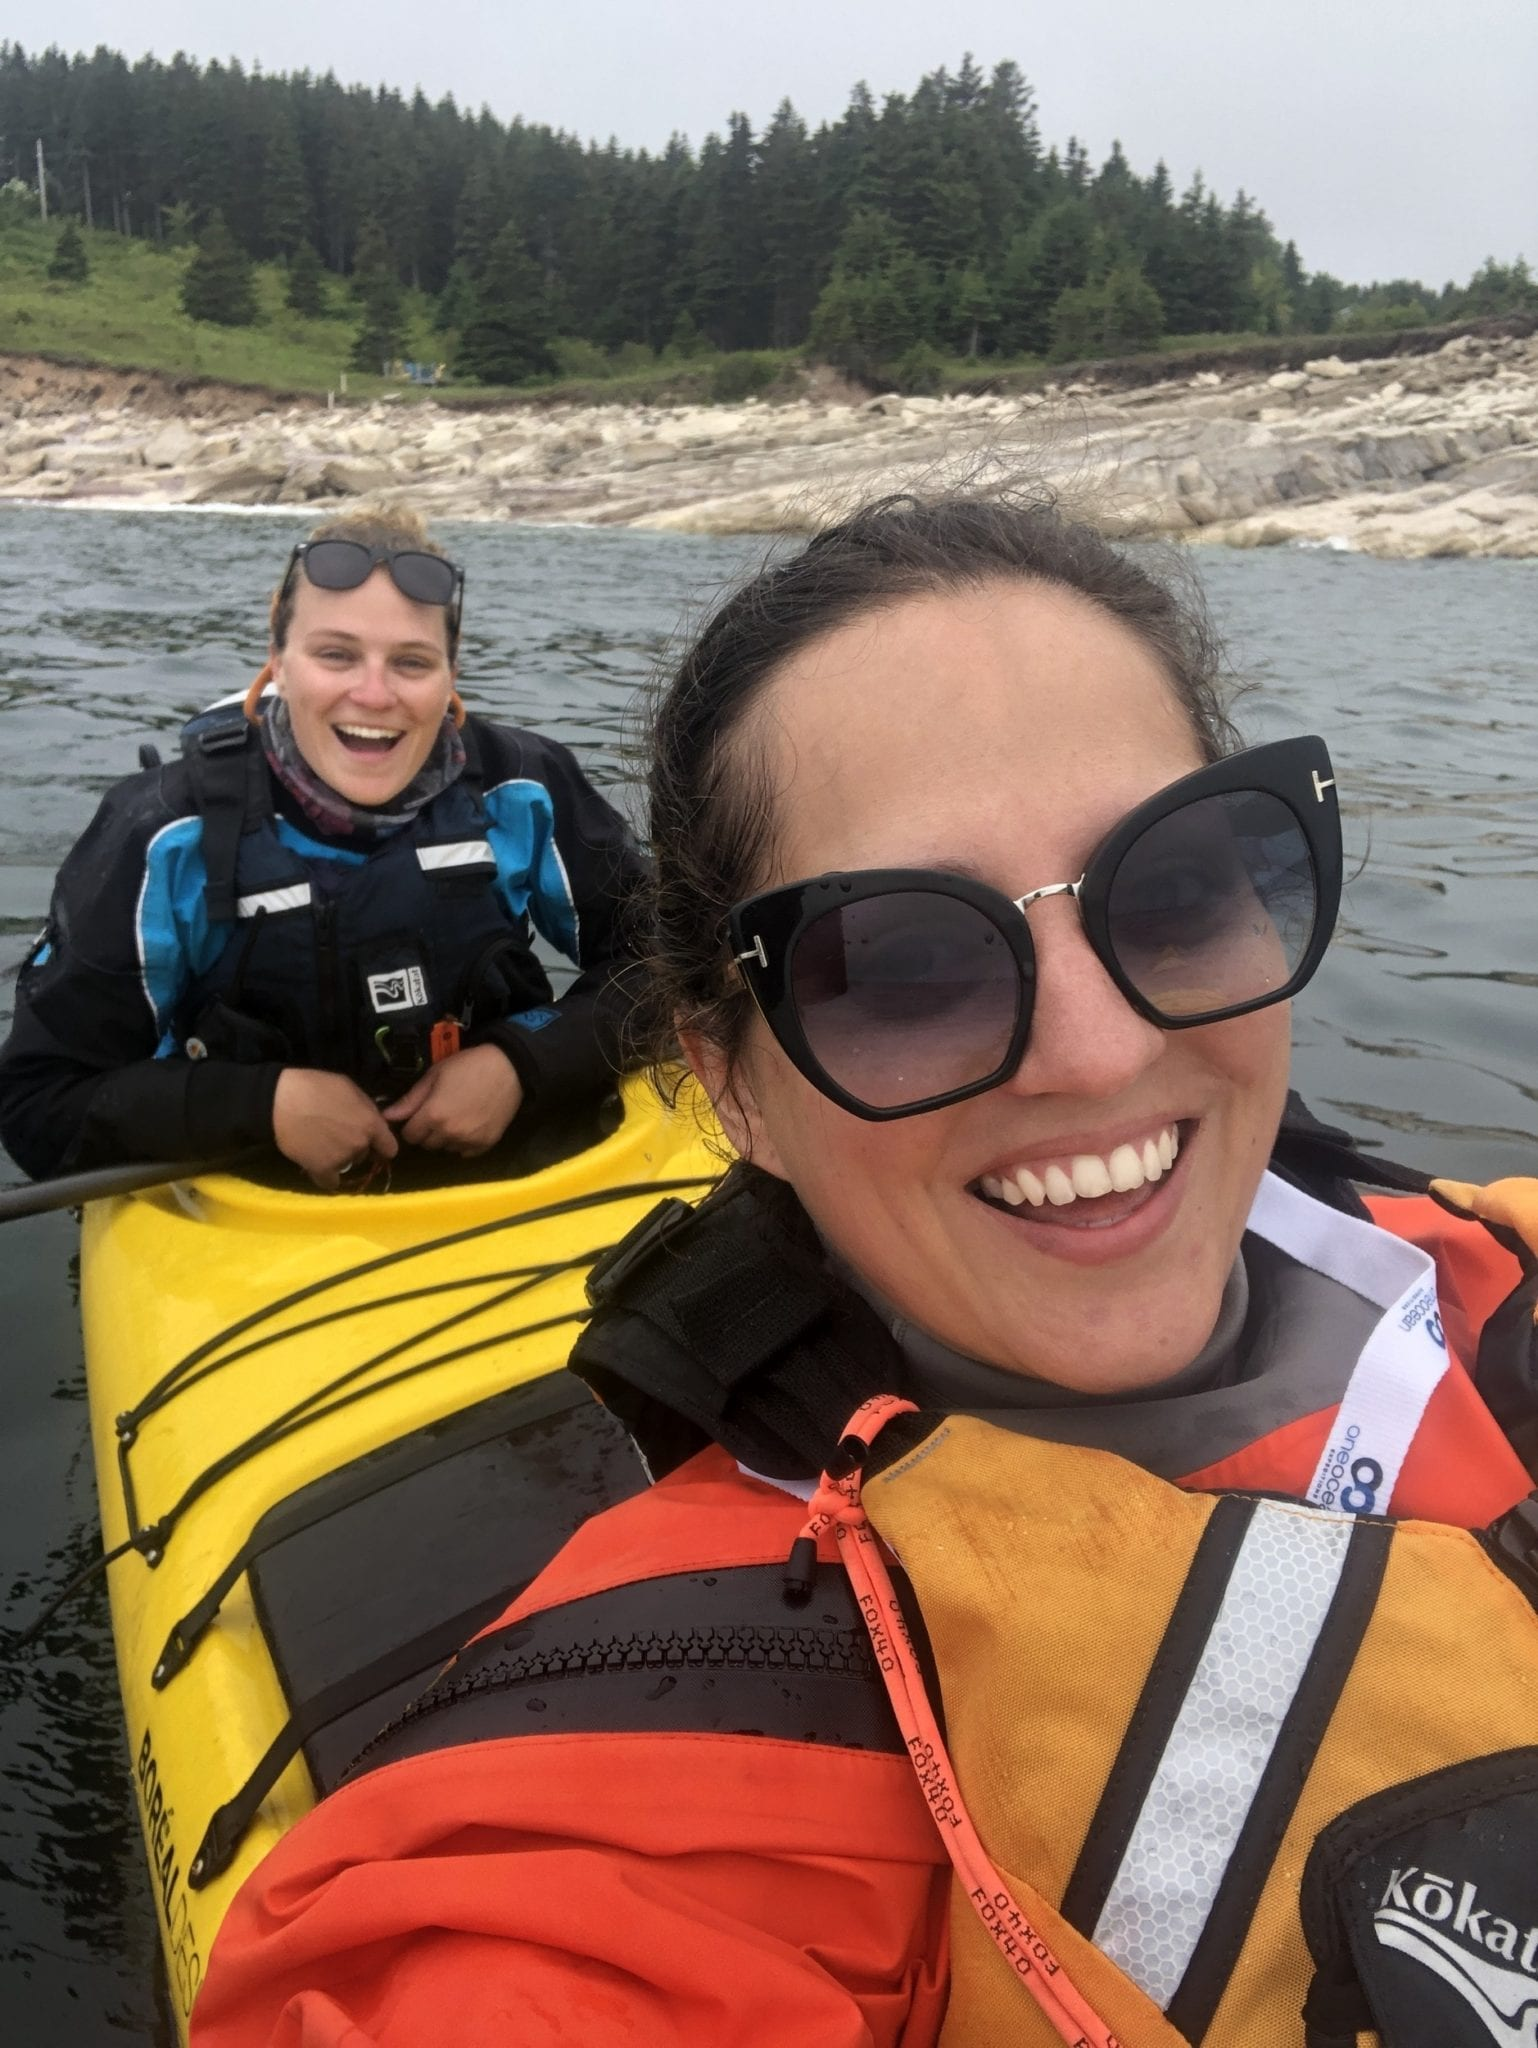 Kate takes a selfie from the front of a kayak as her friend Haley smiles from the back of the kayak.